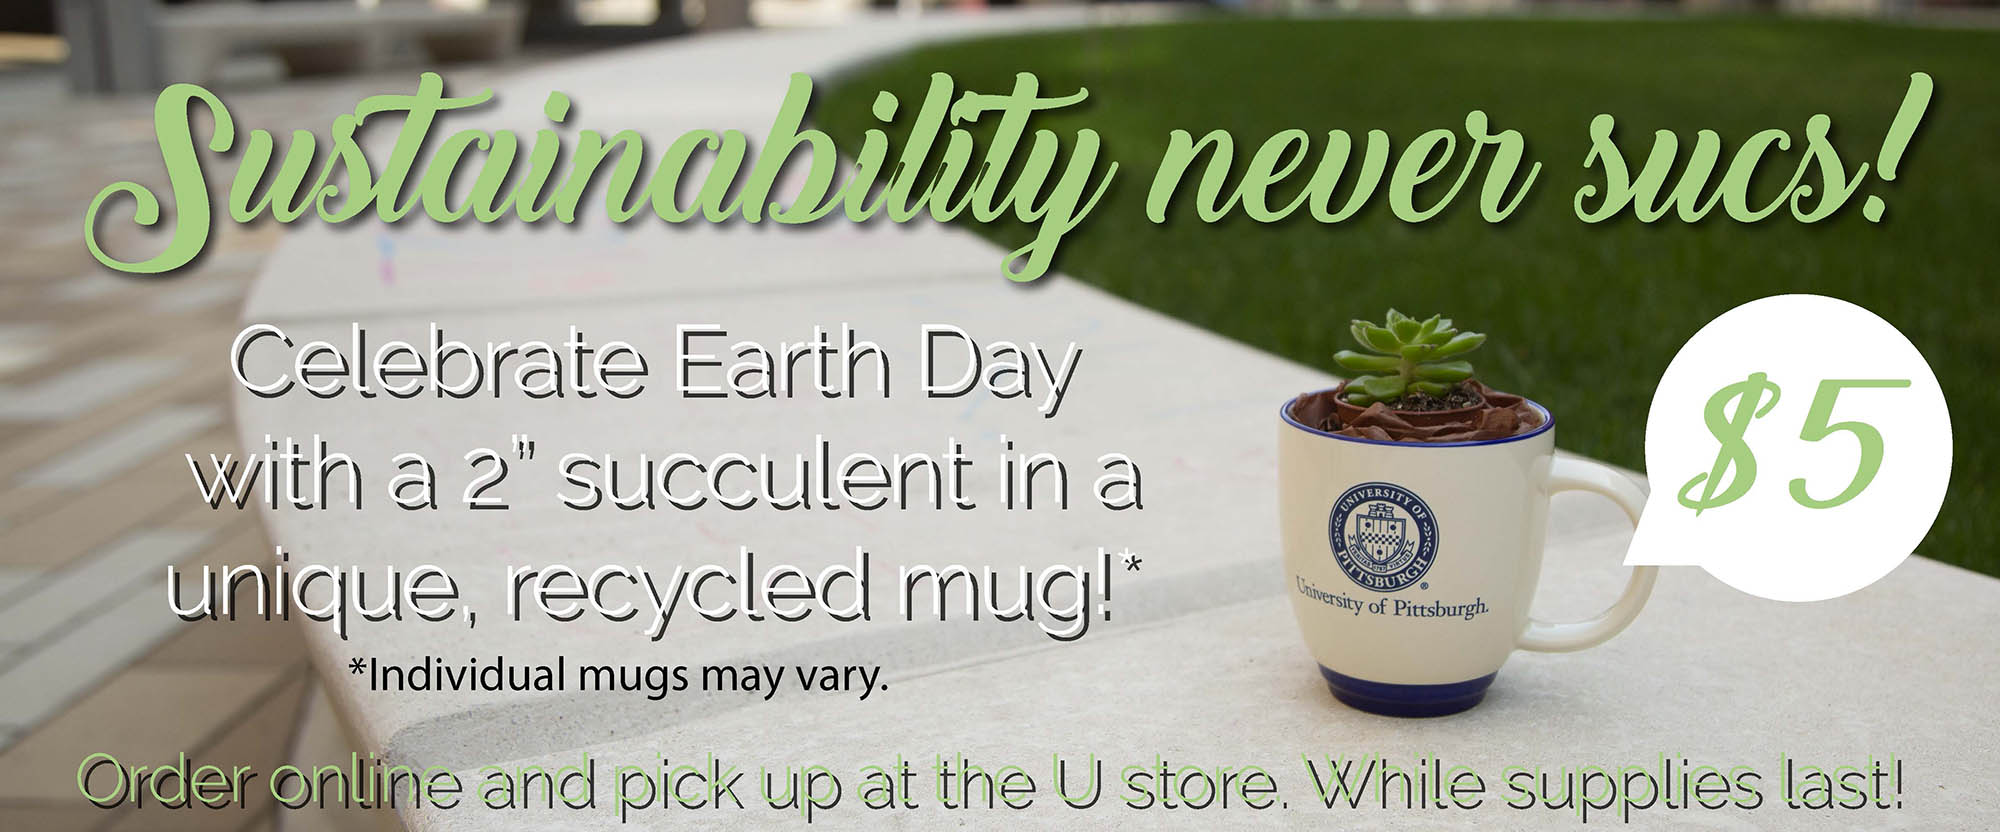 celebrate earth day with a suuculent